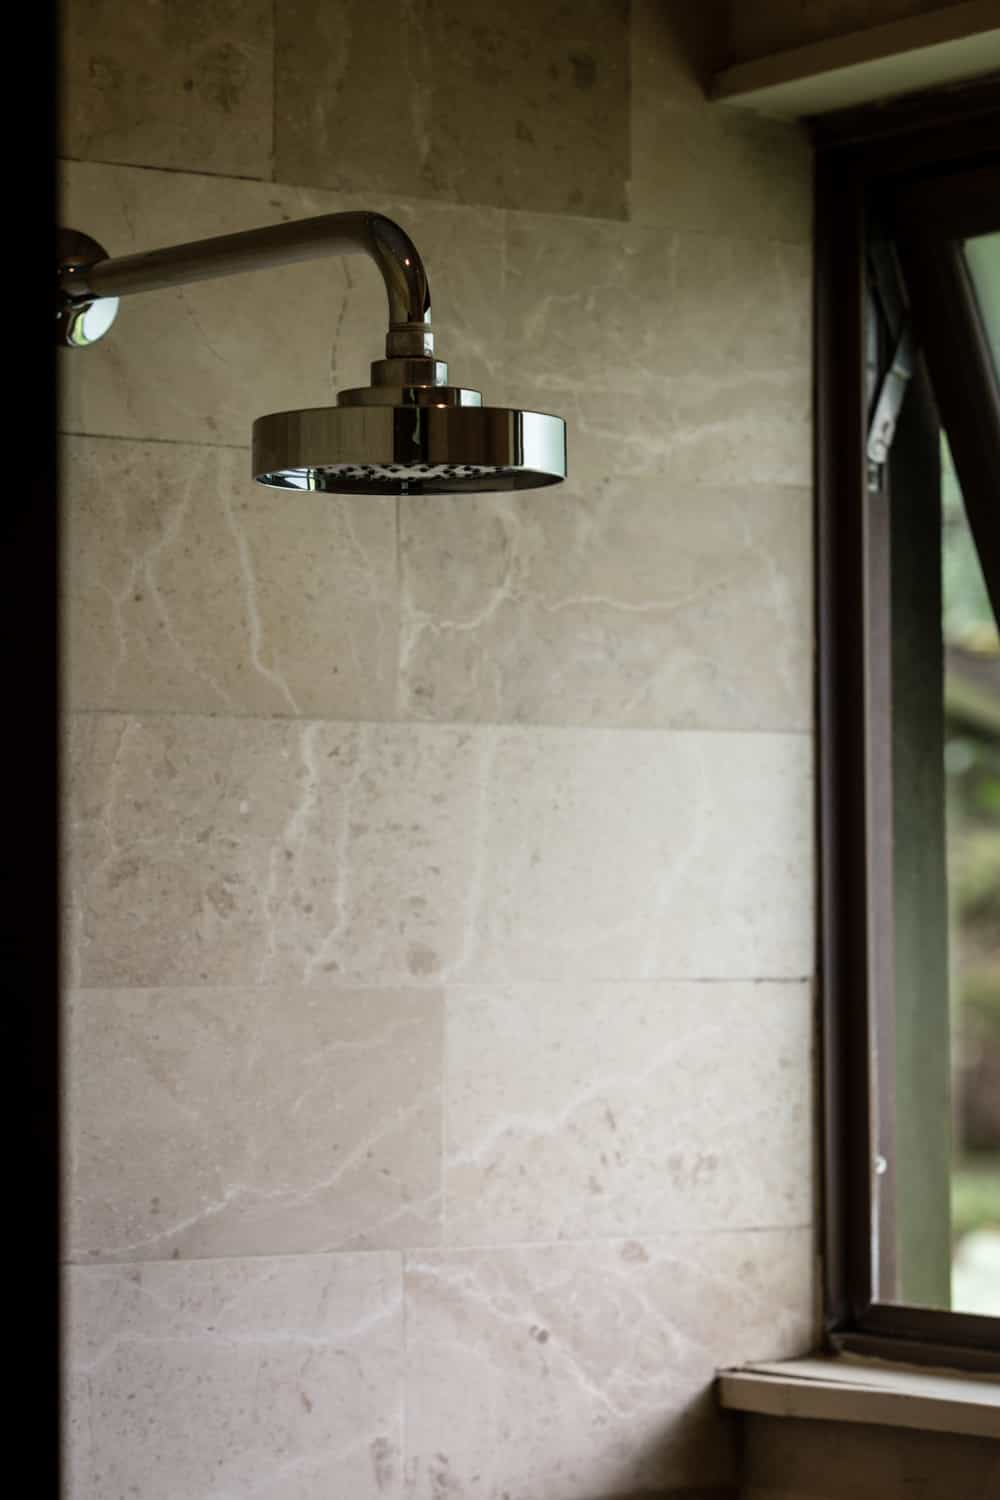 Natural stone shower wall with elegant shower head in honeymoon bathroom.